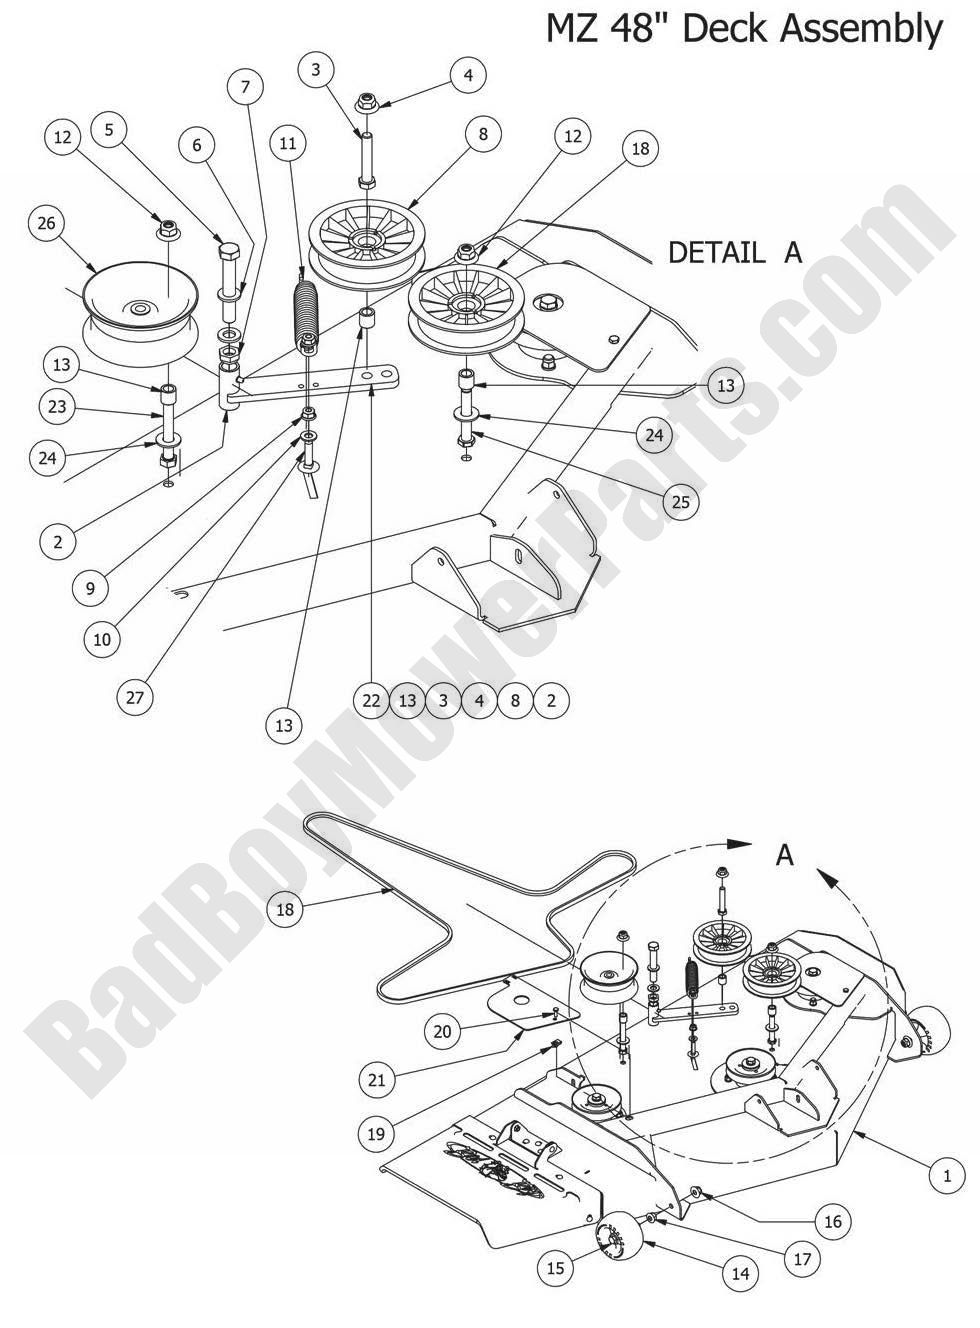 Bad Boy Mower Wiring Diagram Auto Electrical 2014 Tundra Headlight 2010 Mz Kawasaki 22 Hp 45